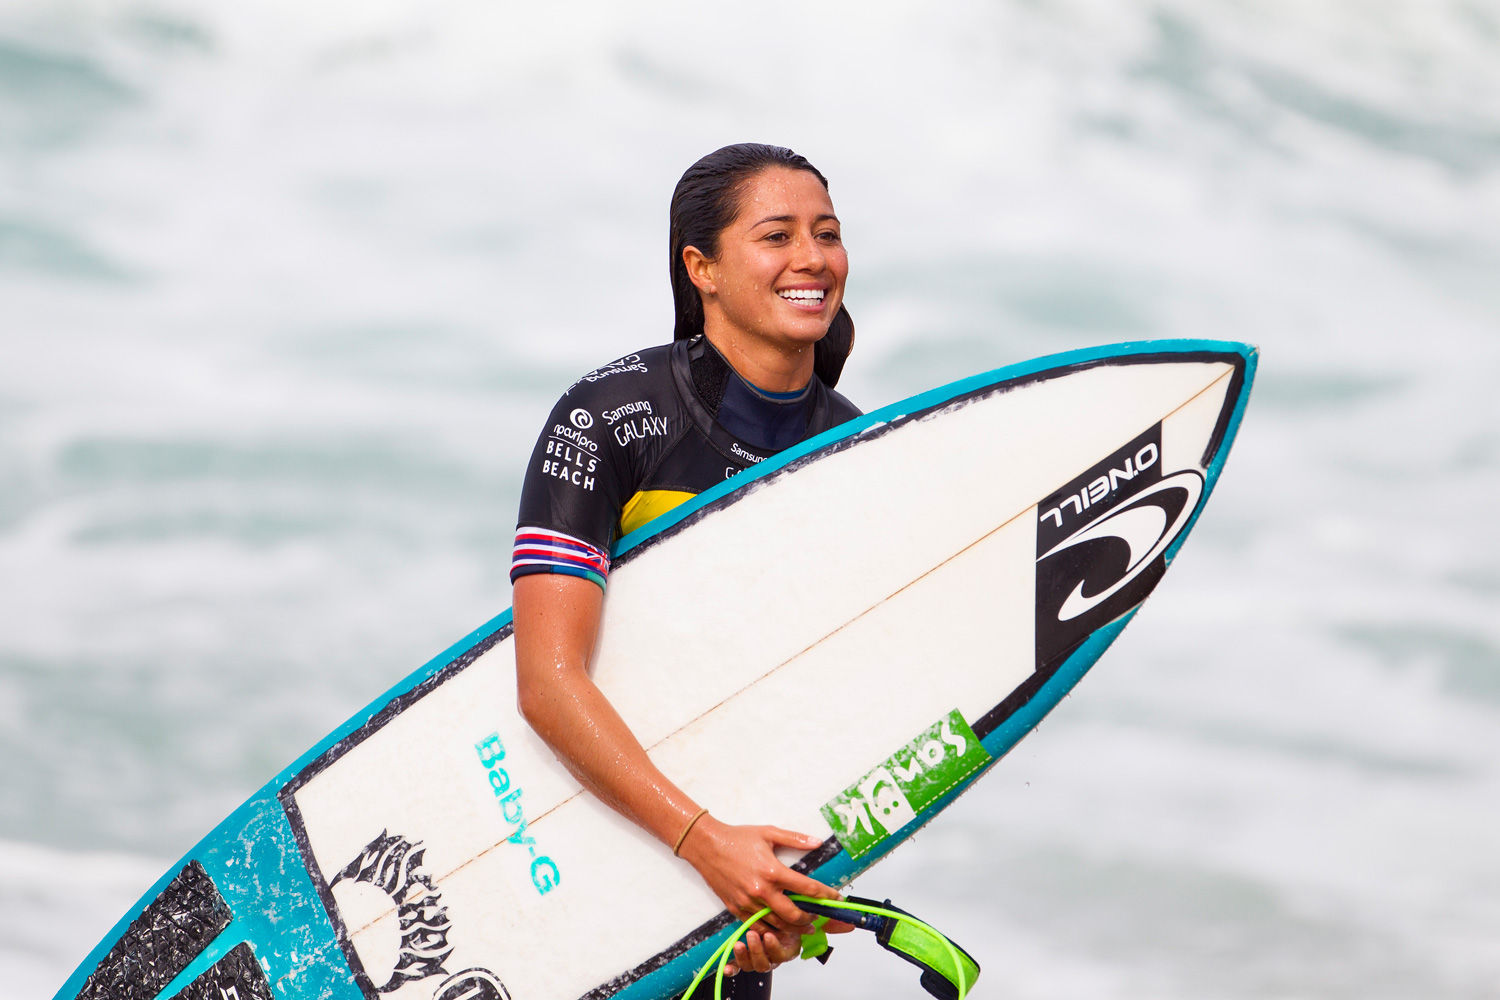 Malia Manuel of Hawaii walks with her surfboard after coming in second place in the first heat with a 14.03.